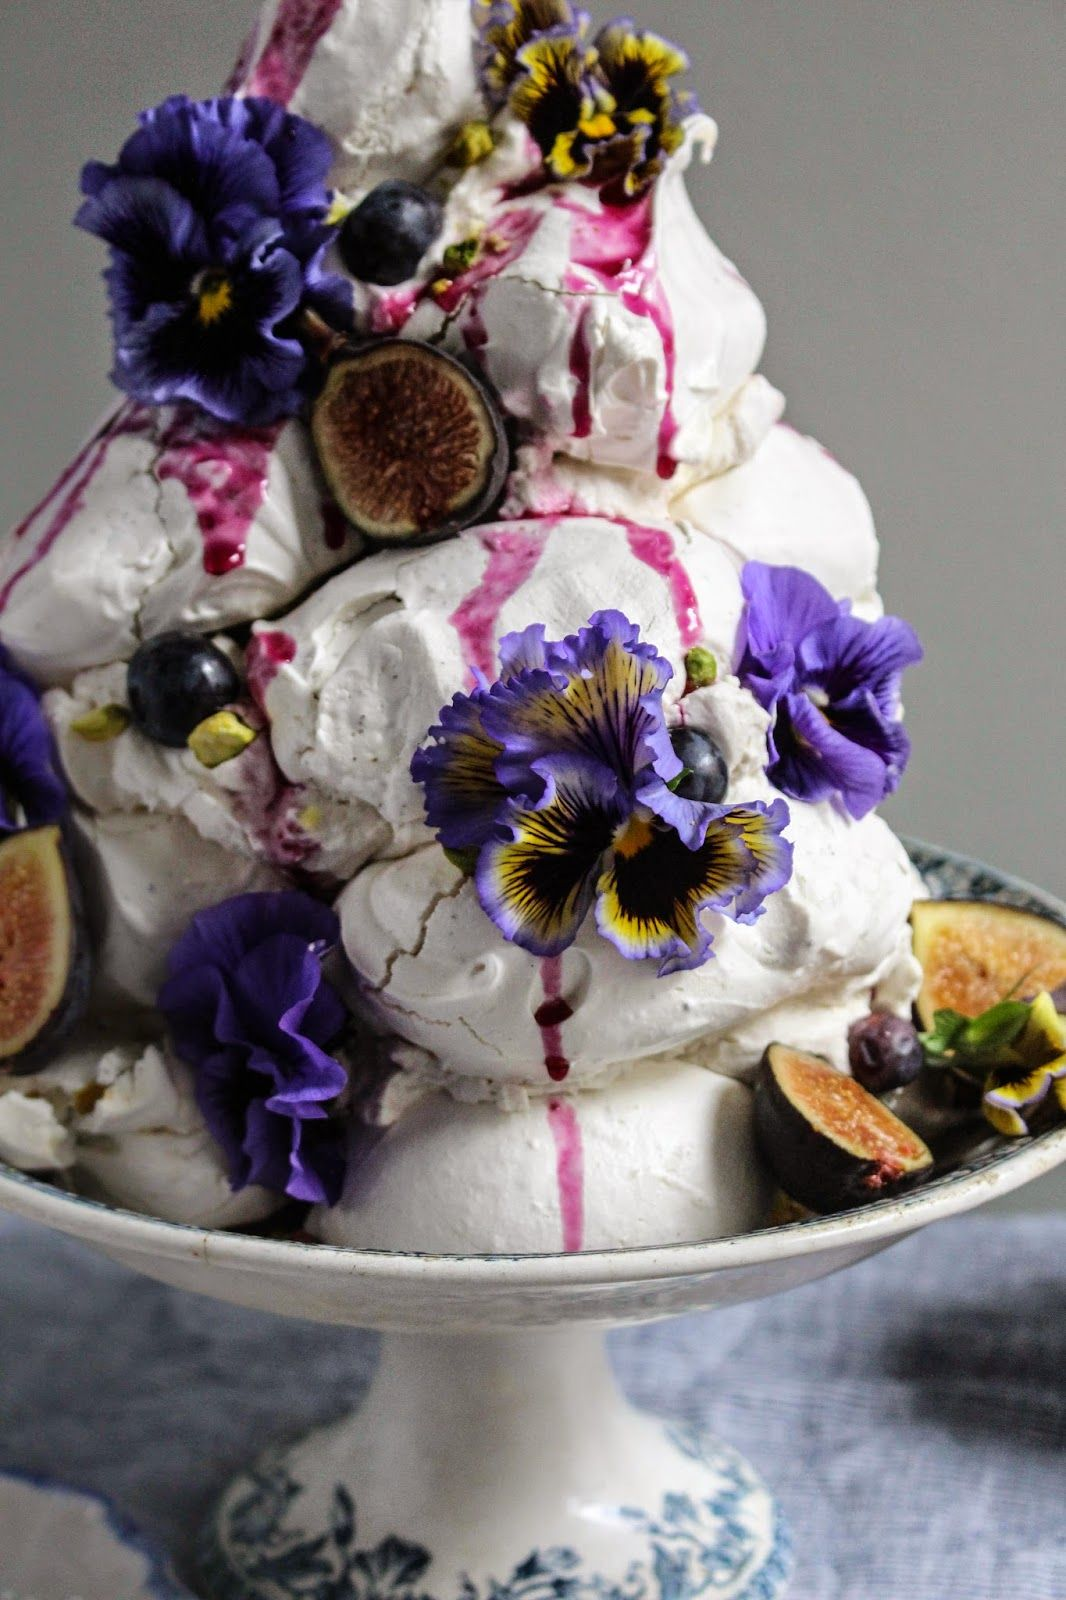 Photo of earl grey pistachio meringue tower with blueberries and figs and edible flowers